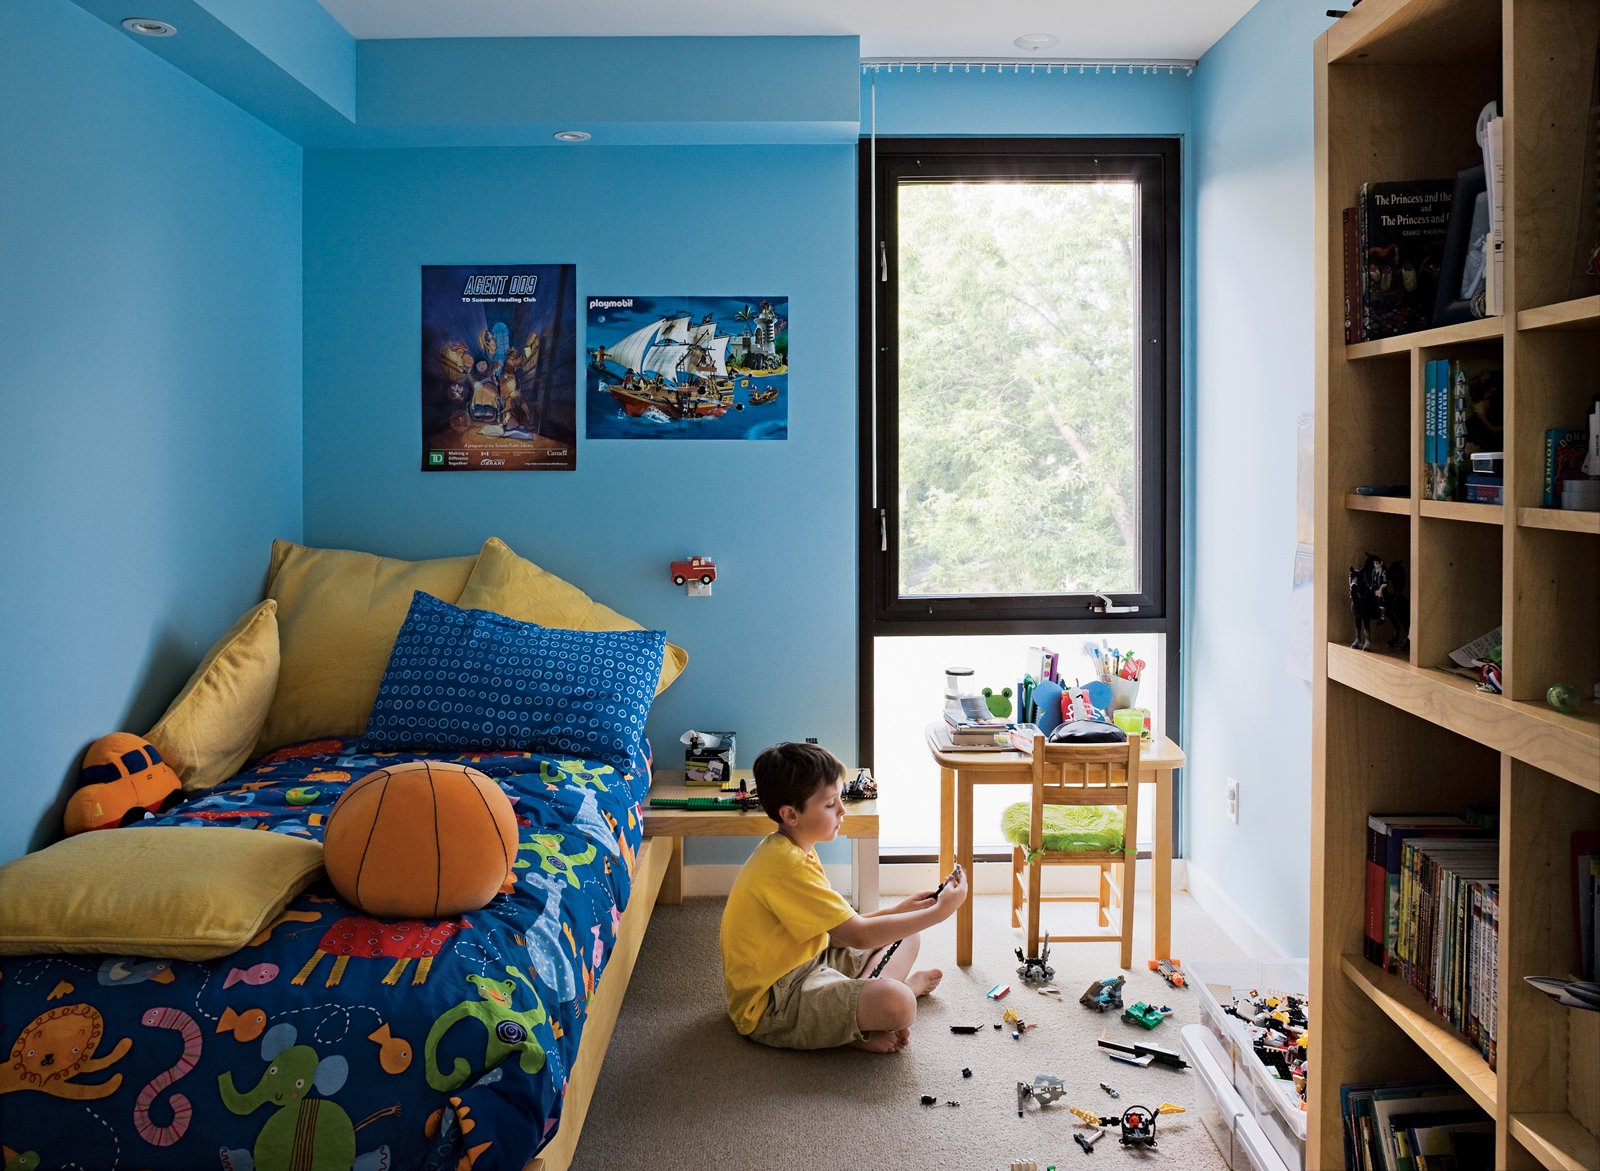 Kids, Bedroom, Boy, Pre-Teen, Desk, Bed, Night Stands, Chair, Carpet, Shelves, and Storage Griffin's room, which is exactly the same size as his brother's, gets good light from the backyard.  Kids Desk Night Stands Shelves Photos from Narrow Modernist Three-Story Home in Toronto